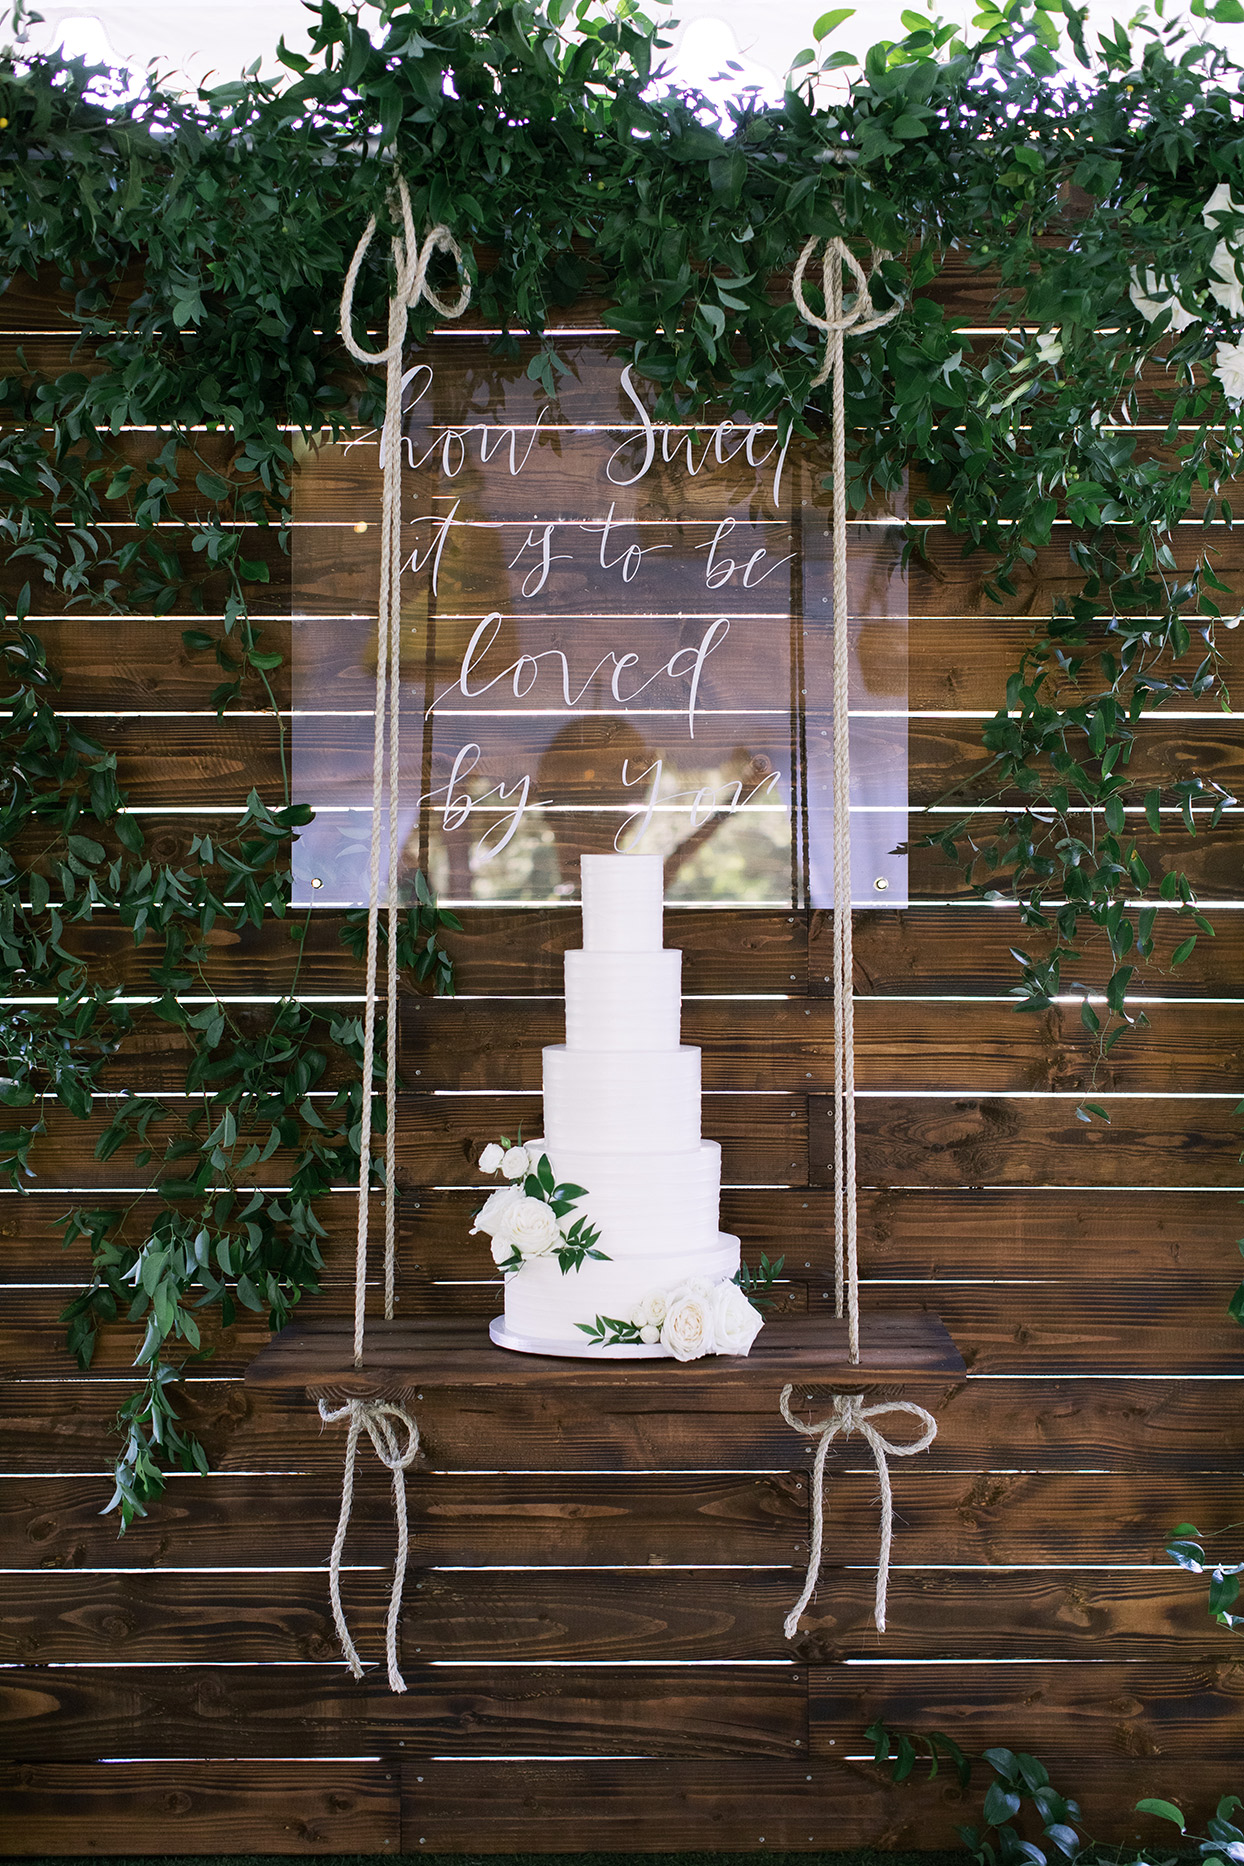 amanda will wedding cake suspended against wooden wall